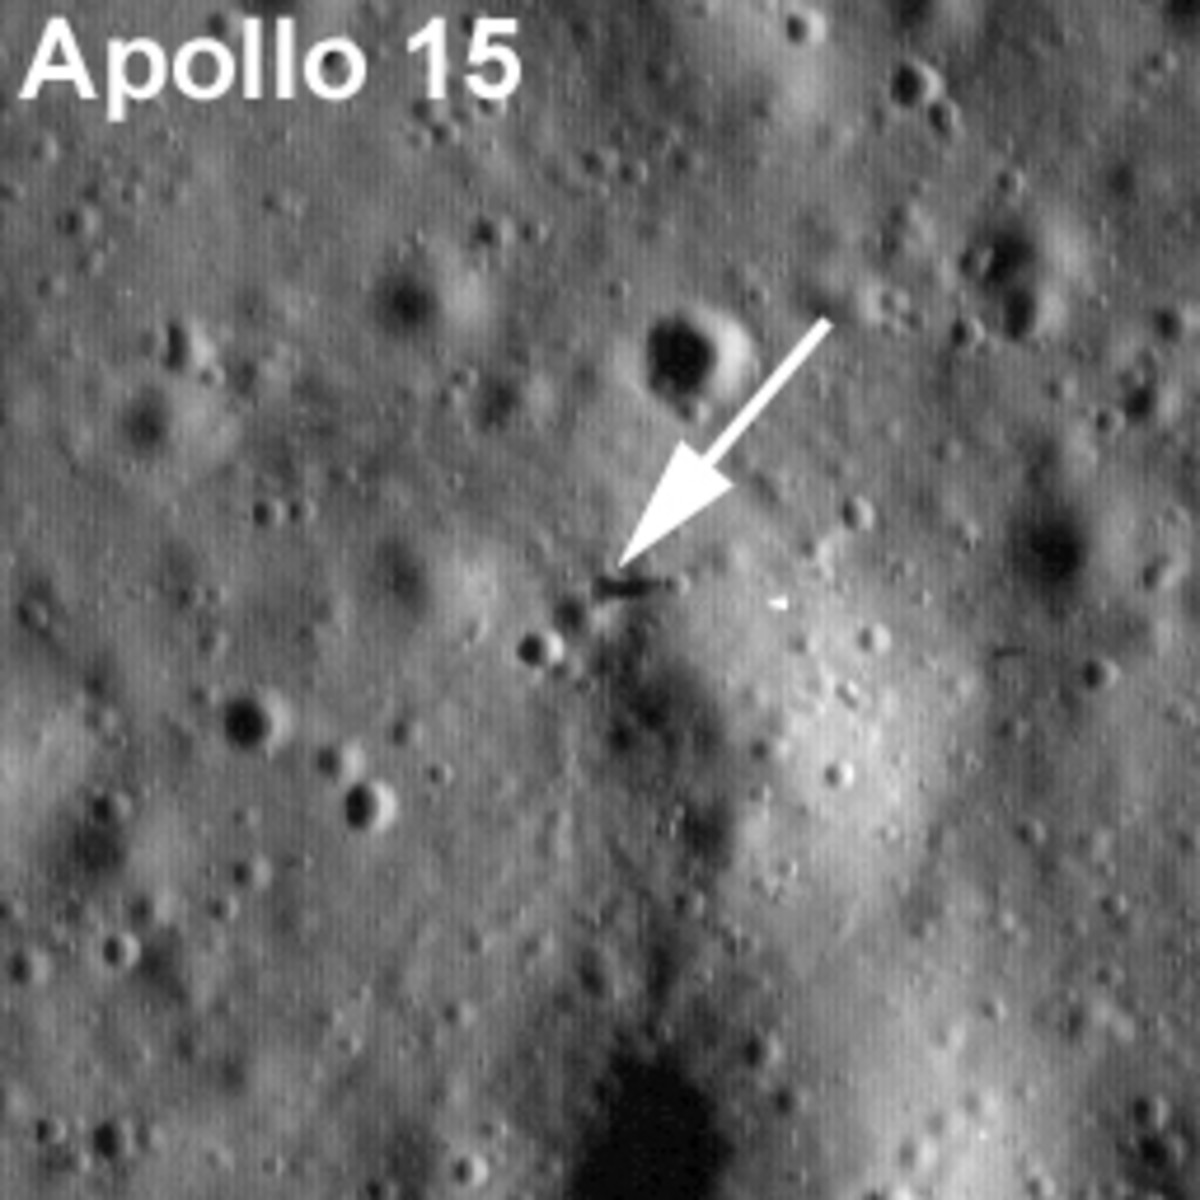 Close-up of previous photo to show the lander. I'm impressed they spotted it, but I guess they knew where to look.